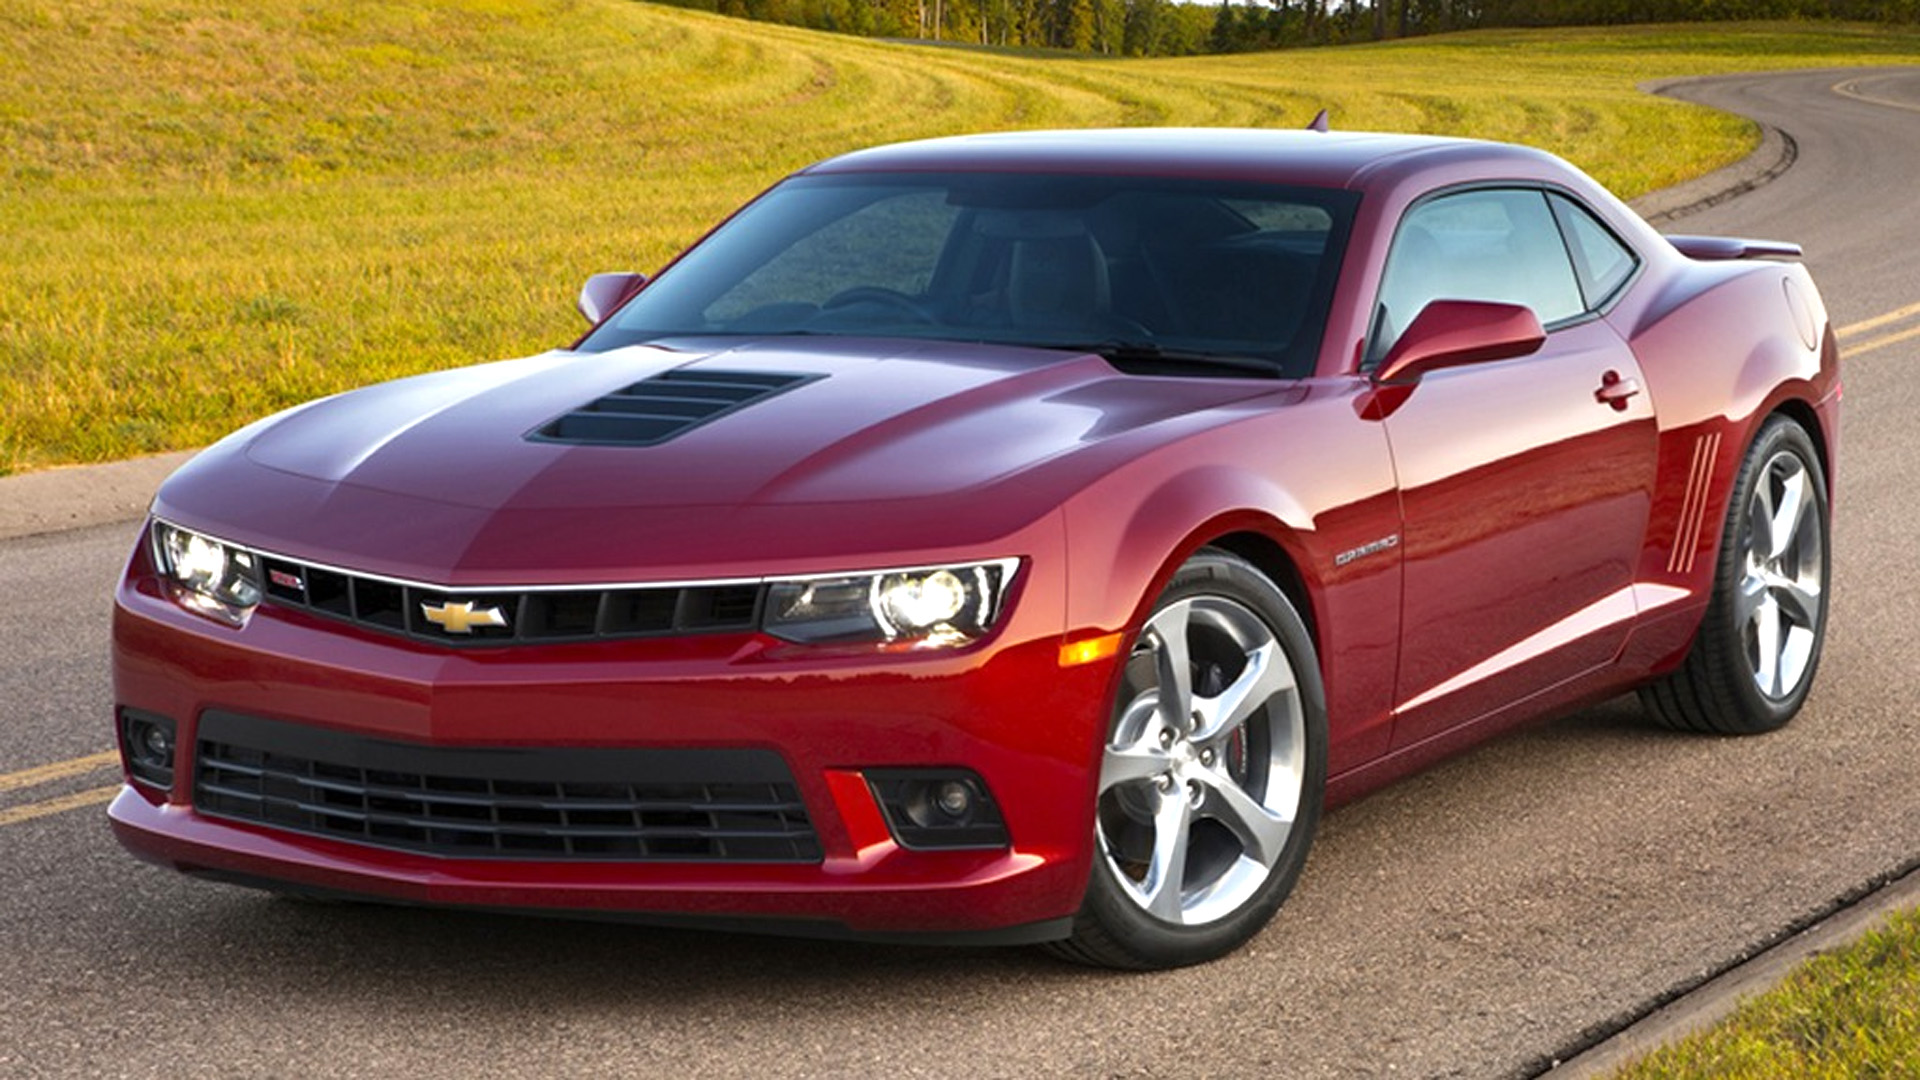 Chevrolet Camaro SS Car   Choice Wallpaper 1920x1080